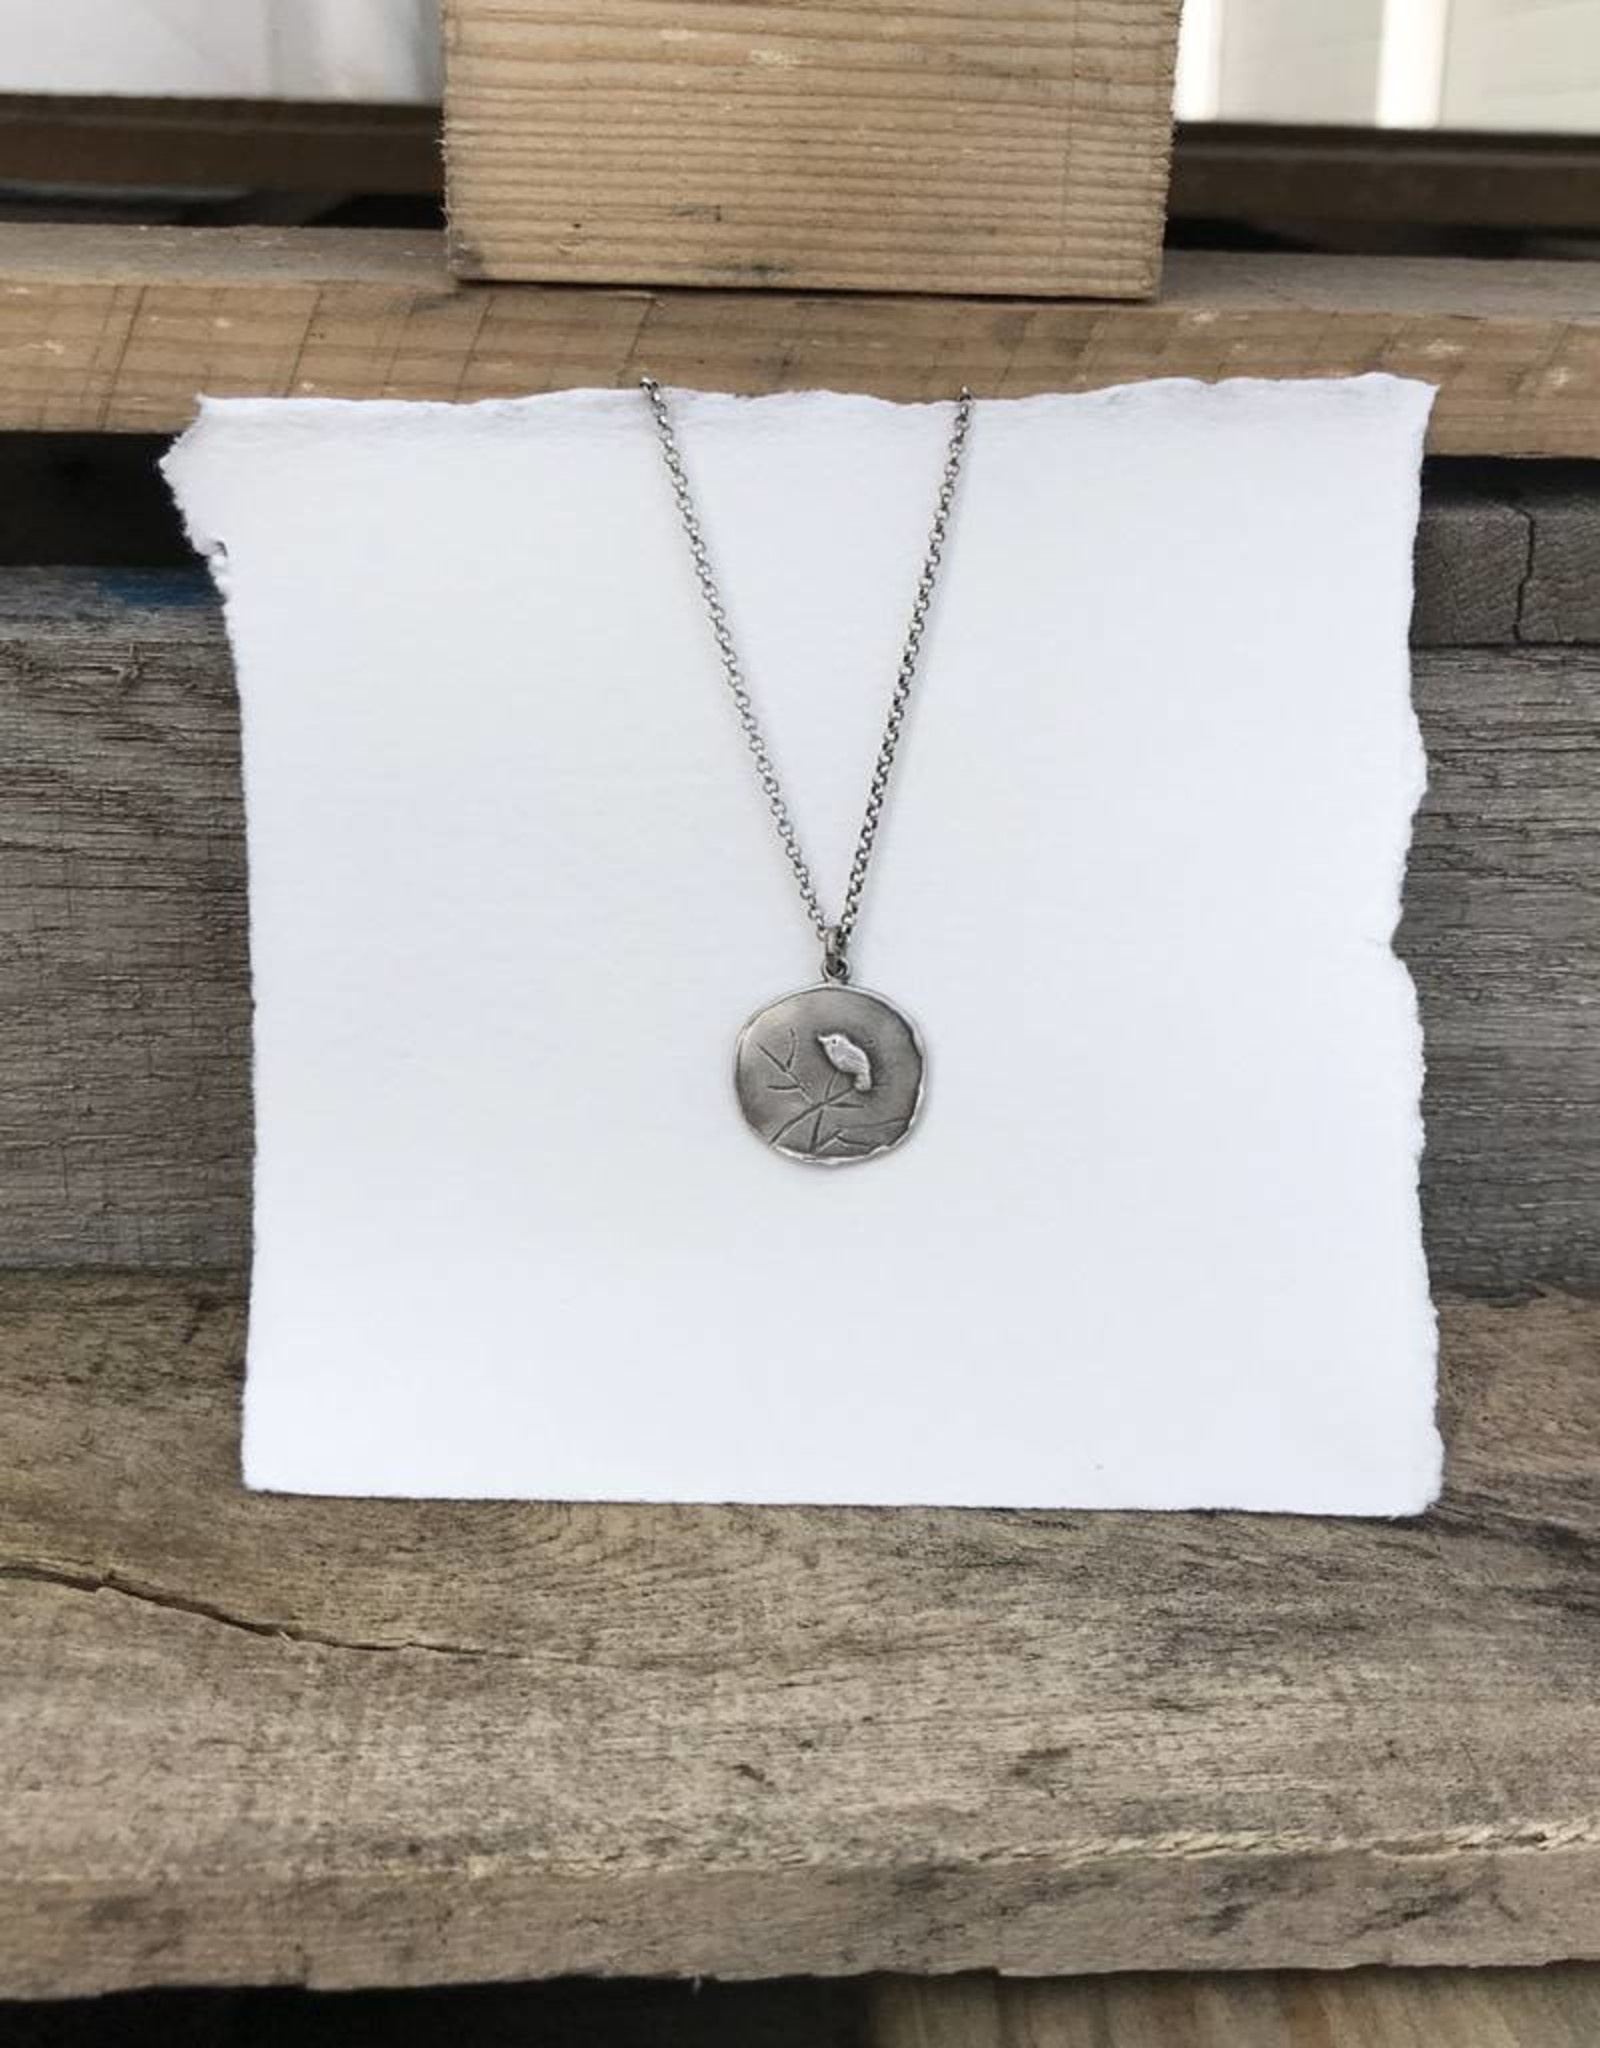 RN138B Refurbished Silver Necklace and Pendant